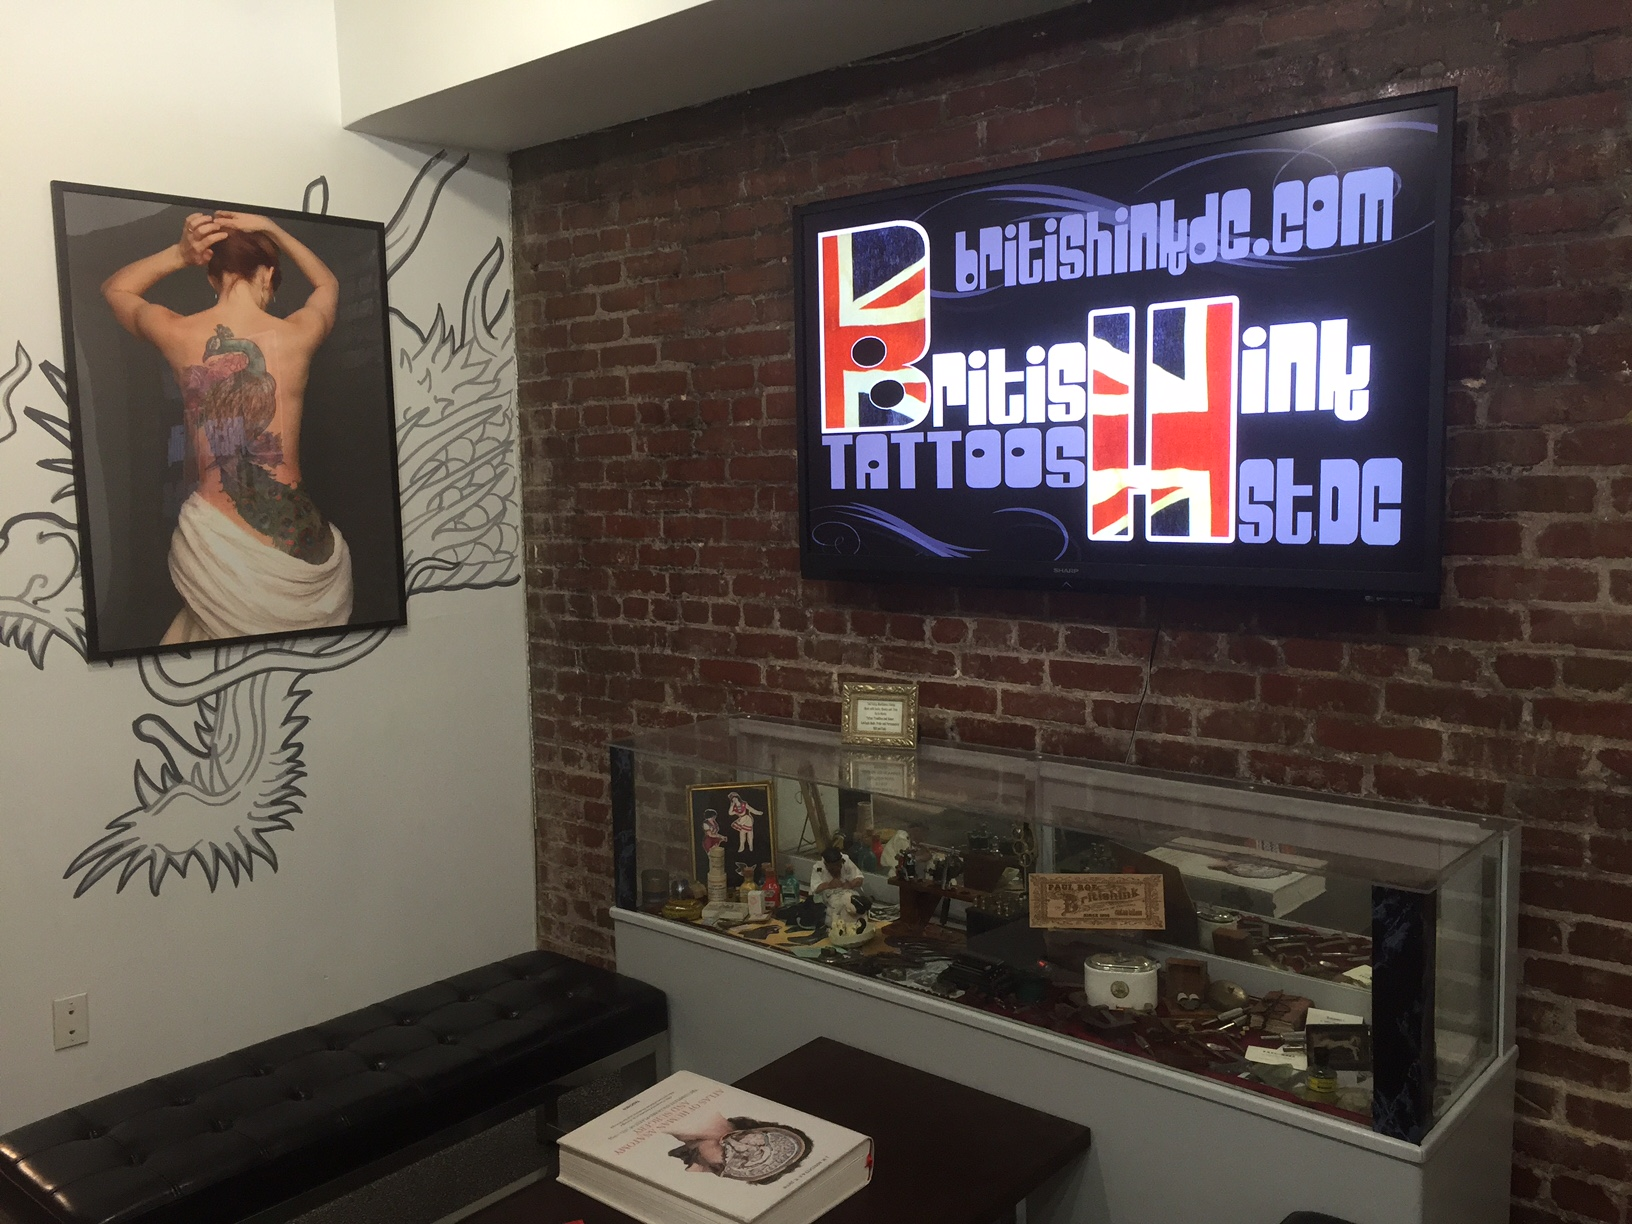 Tattoo artists speak out about proposed D.C. regulations